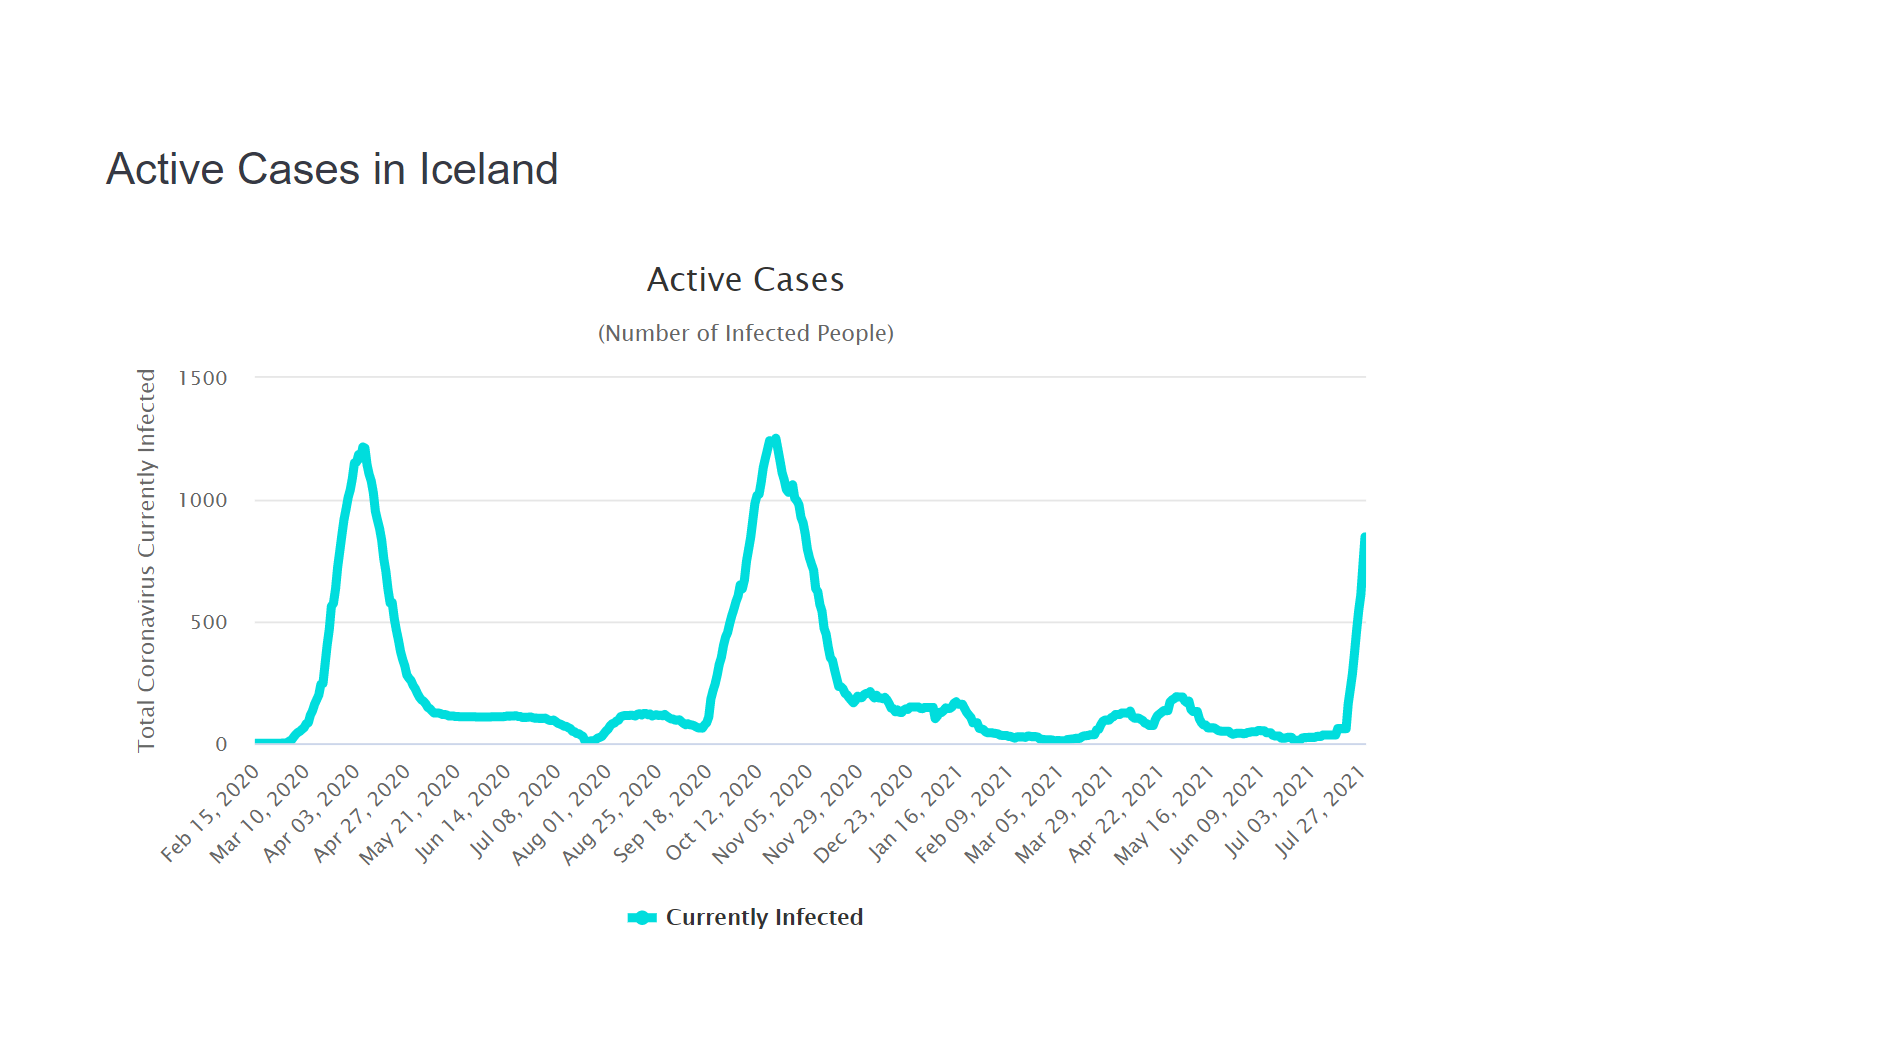 A chart showing the number of active cases of COVID-19 in Iceland. The number rises dramatically at the end